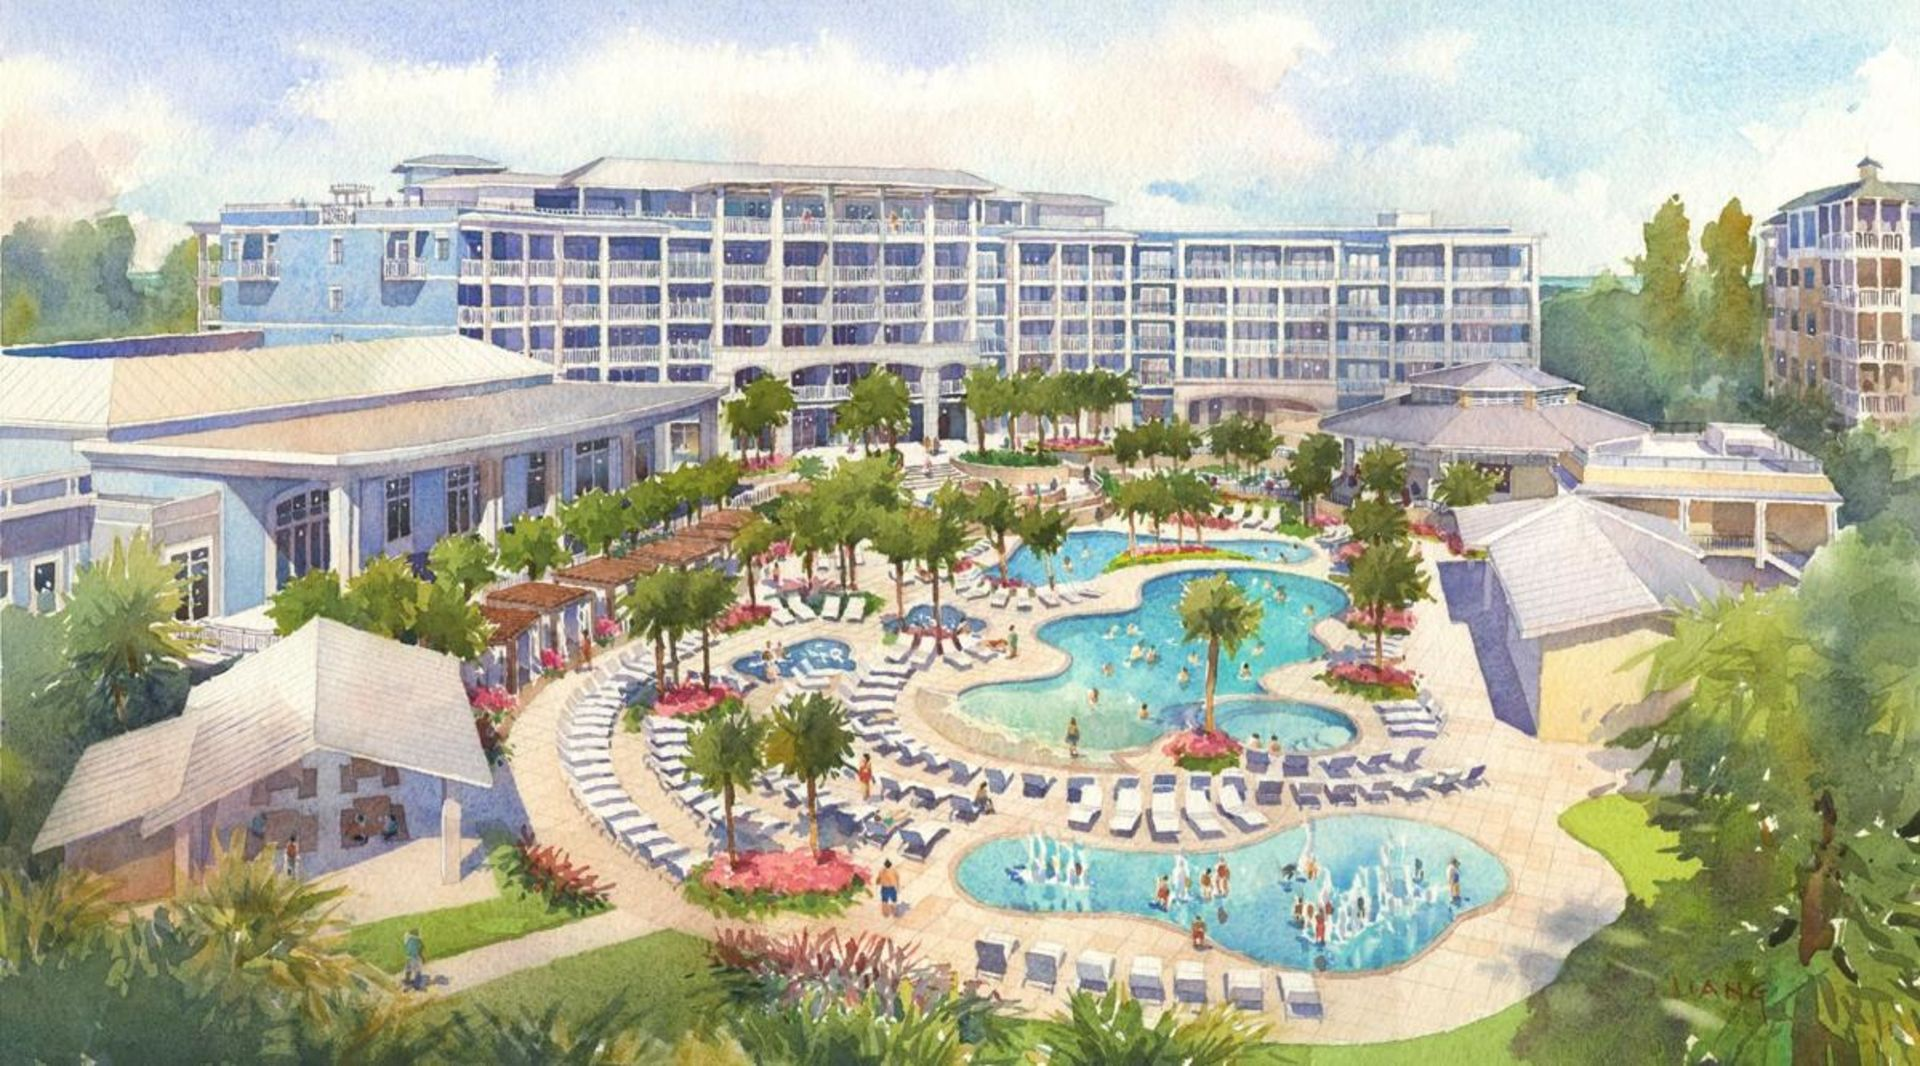 Wild Dunes Resort Adding a Hotel to Isle of Palms